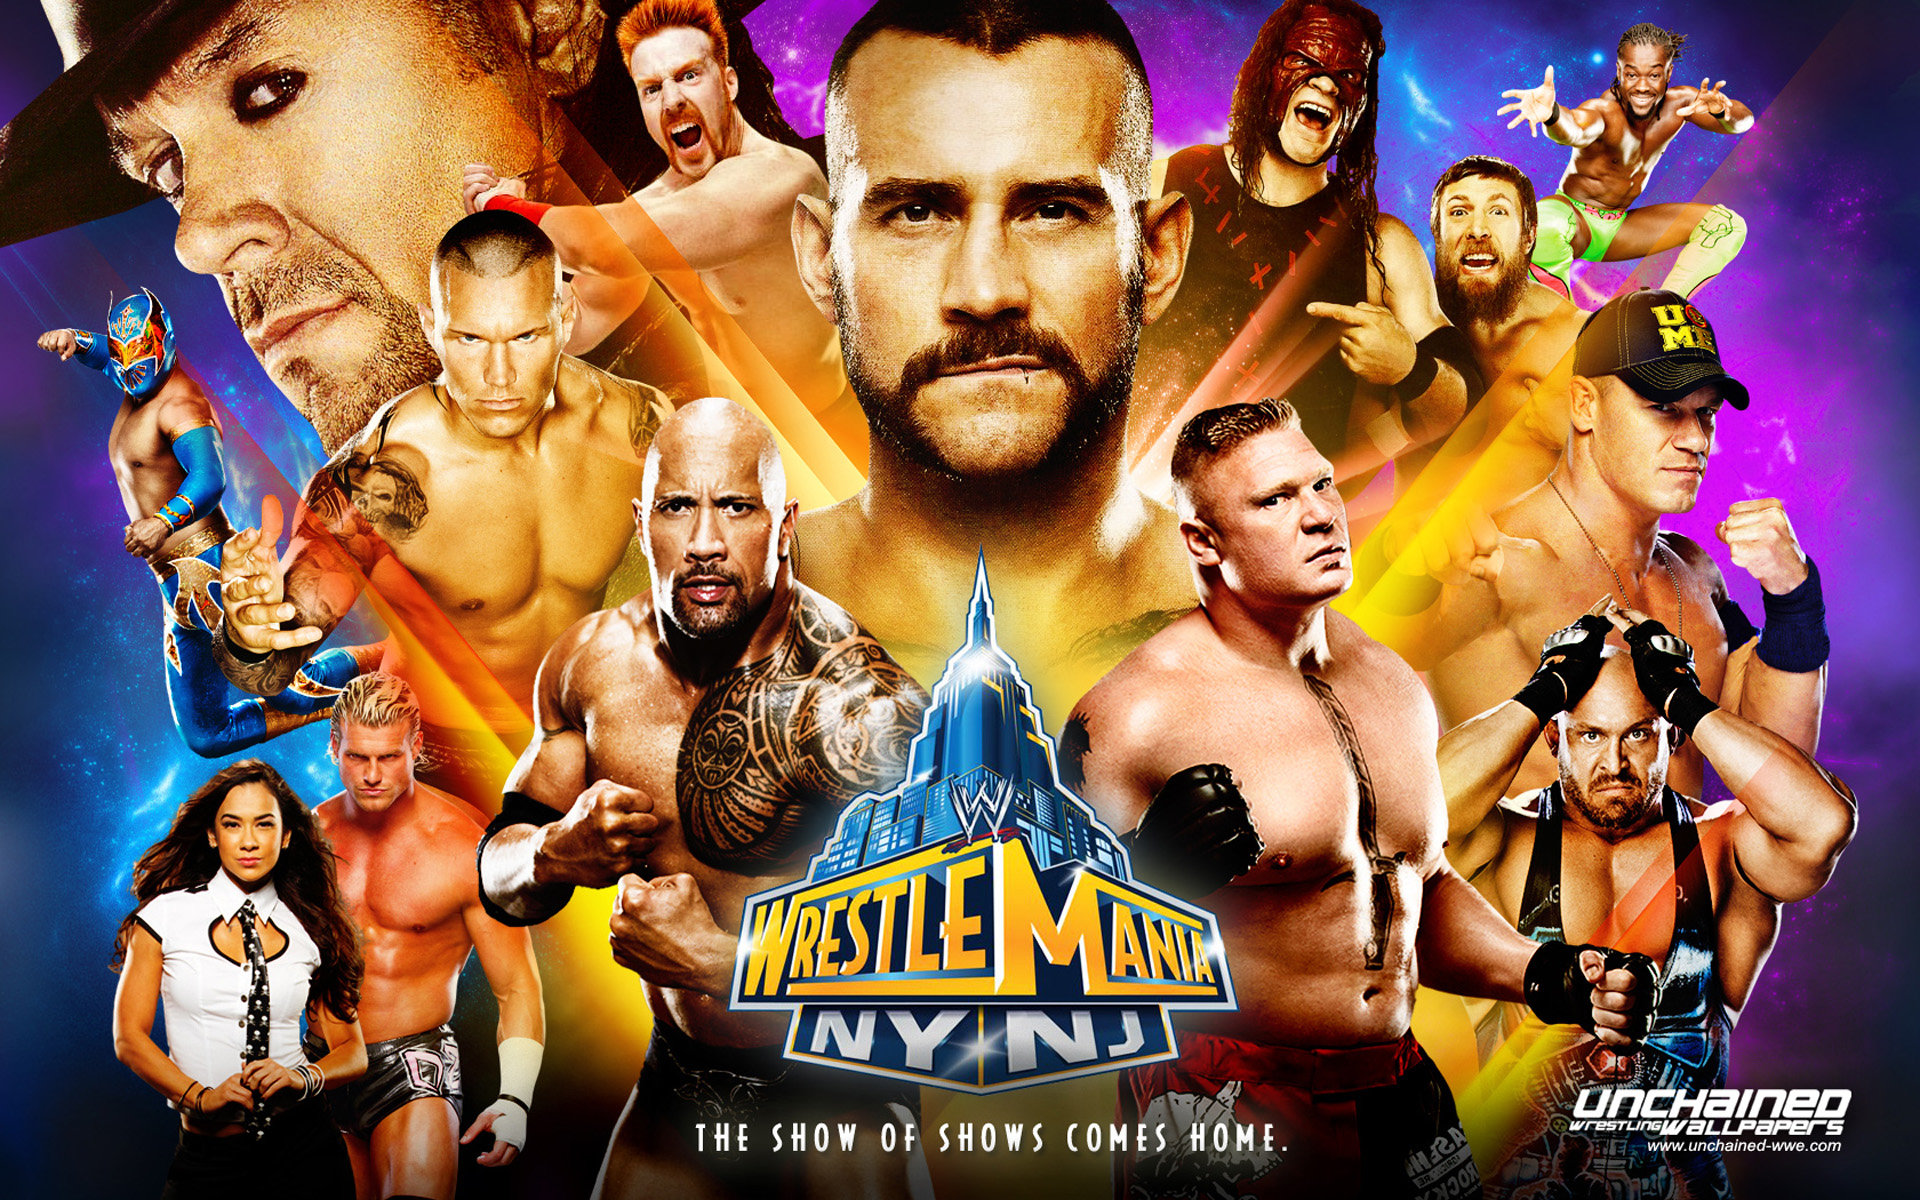 WWE Wrestlemania 29 (2013) (EXCLUE) [HDTV]